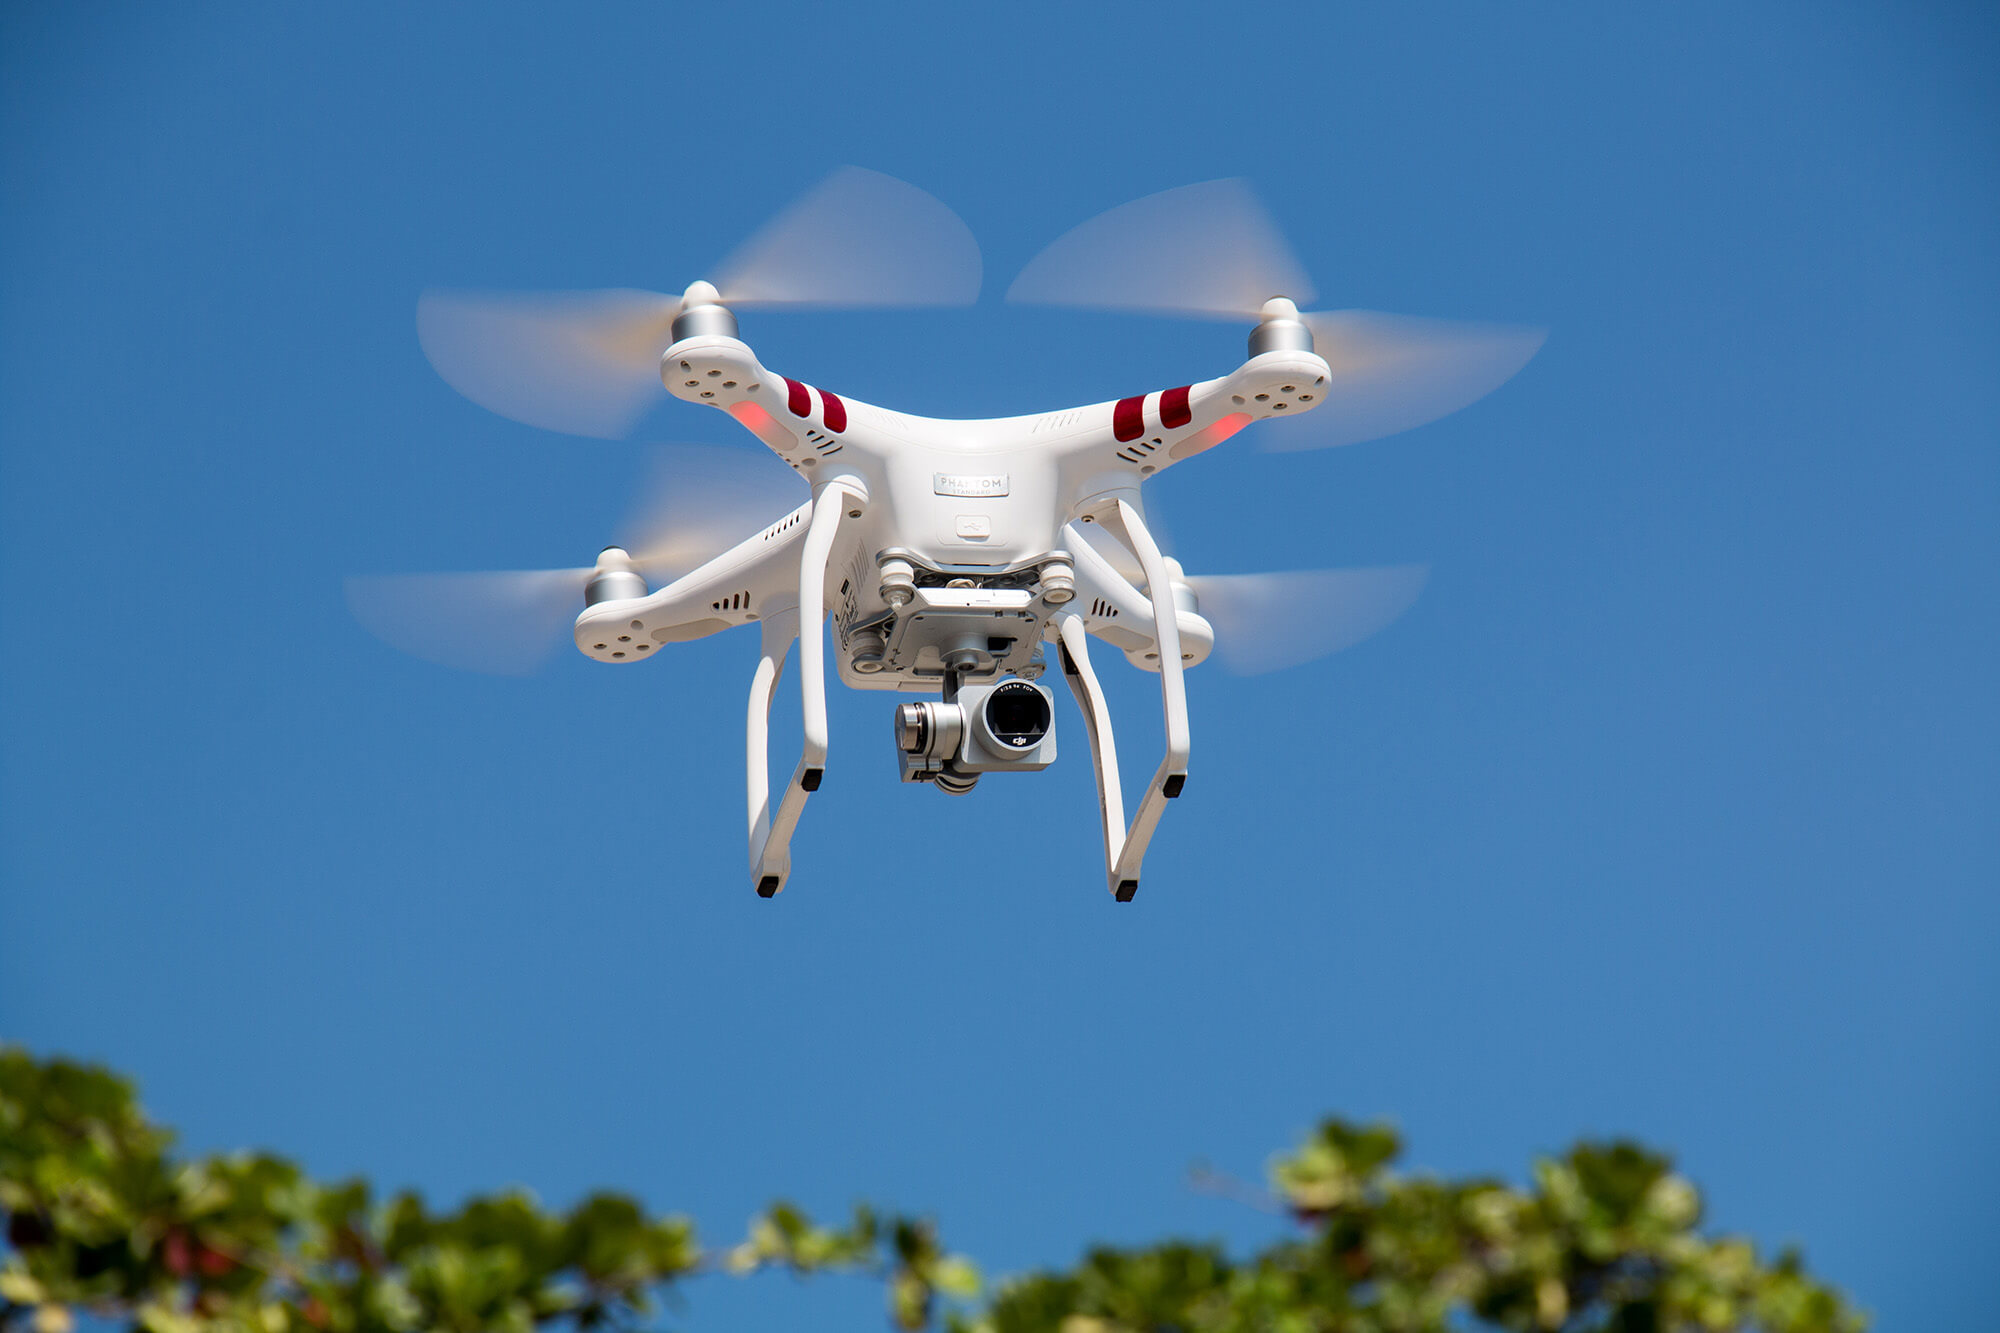 a flying drone with camera